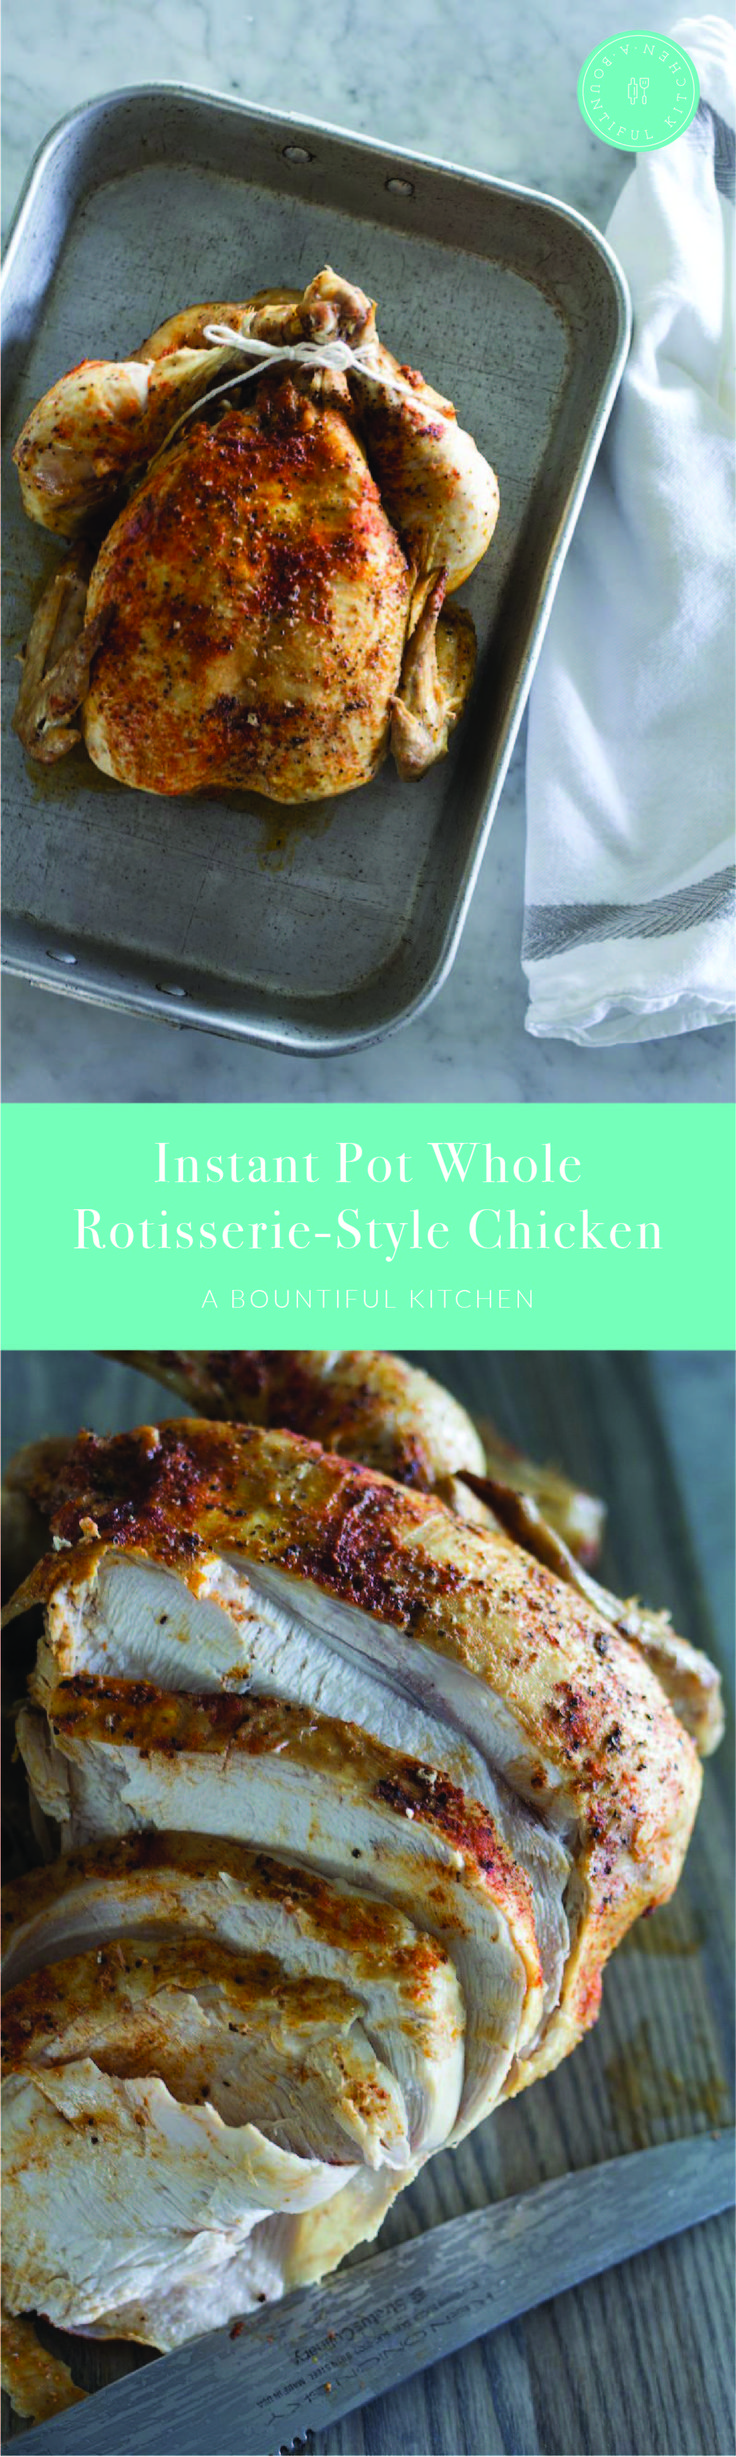 A Bountiful Kitchen: The Instant Pot is your ticket to easy home cooked rotisserie chicken! This recipe for Instant Pot Whole Rotisserie-Style Chicken will be your new go-to recipe for roasting moist and tender chicken right in your home. #instantpot #rotisseriechicken #easy #dinner #holidaycooking